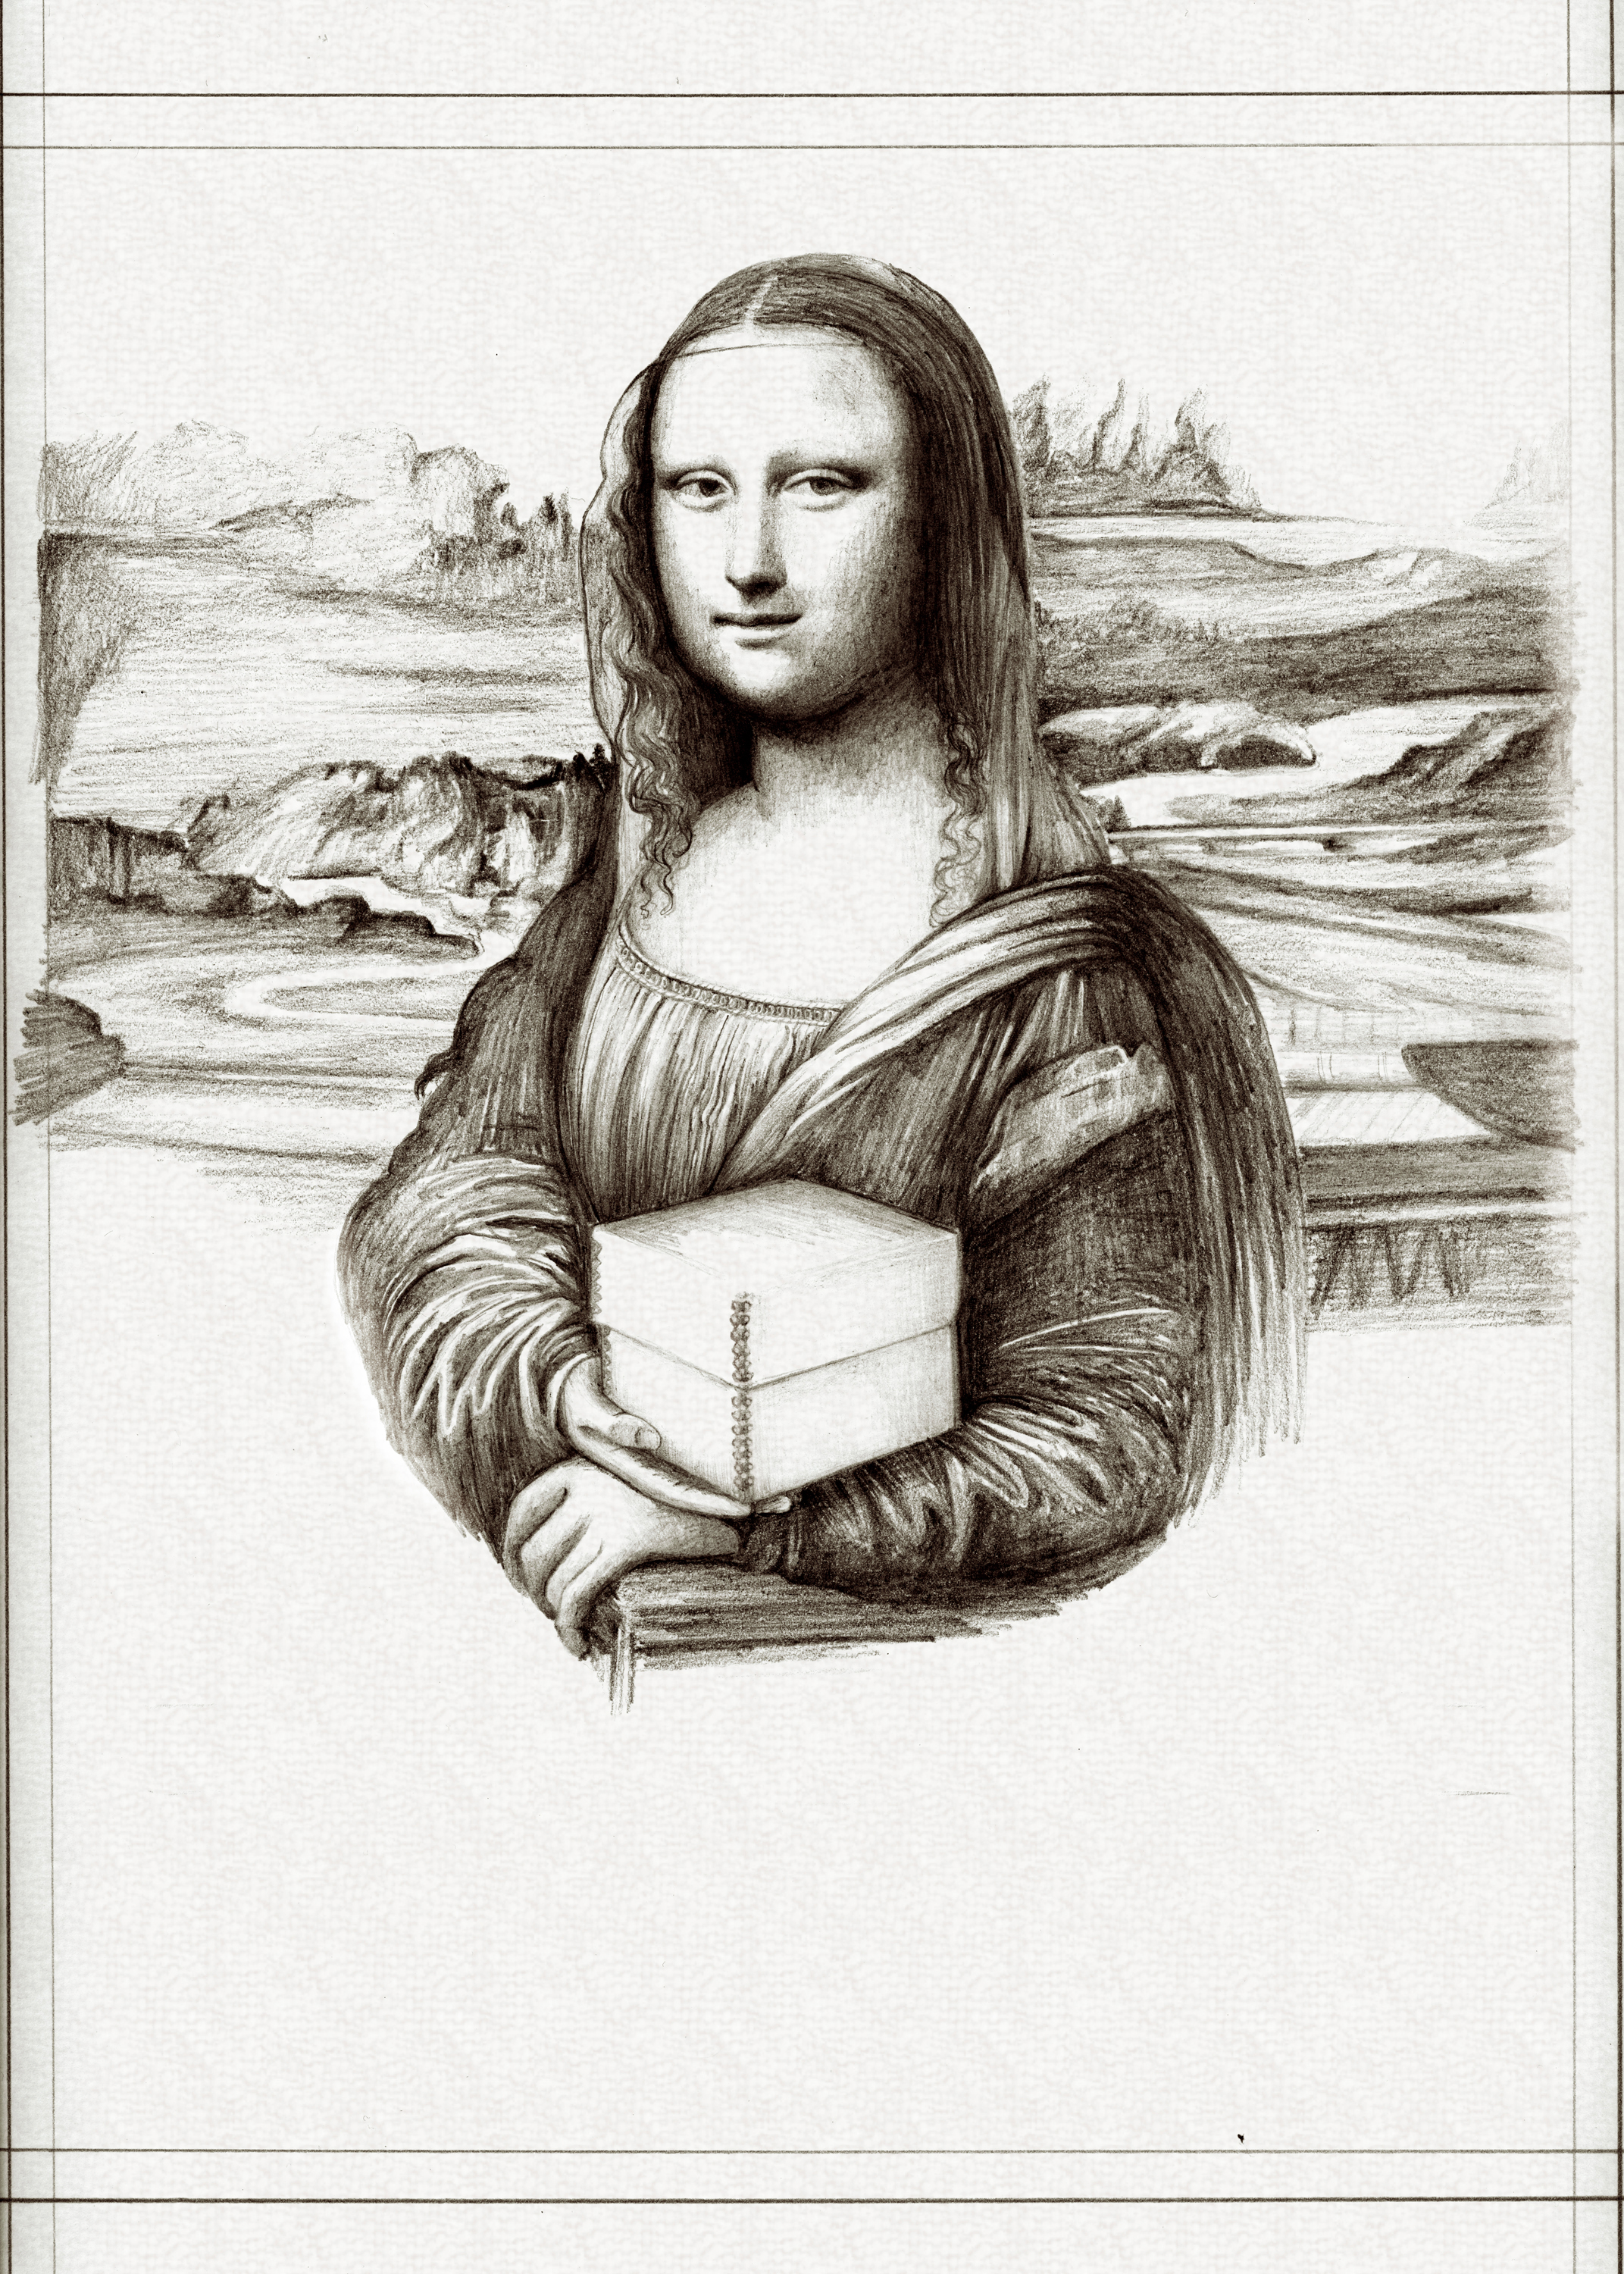 """3. A Pencil Sketch - Once the mock-up is approved, the illustrator begins with a pencil sketch, ensuring to replicate as many details as possible from the original and """"making up"""" information where extension is needed."""